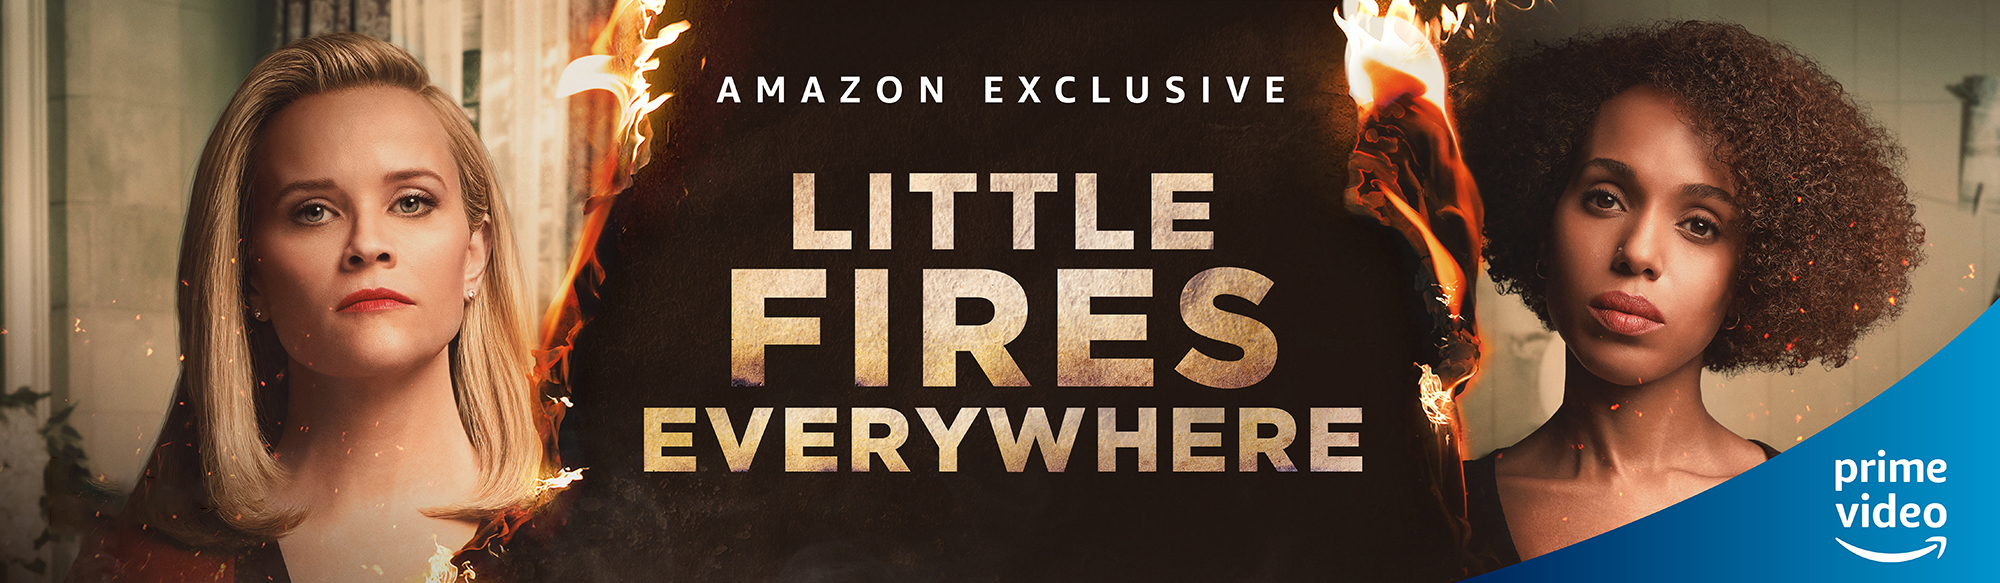 La miniserie Little Fires Everywhere llega a Amazon Prime Video